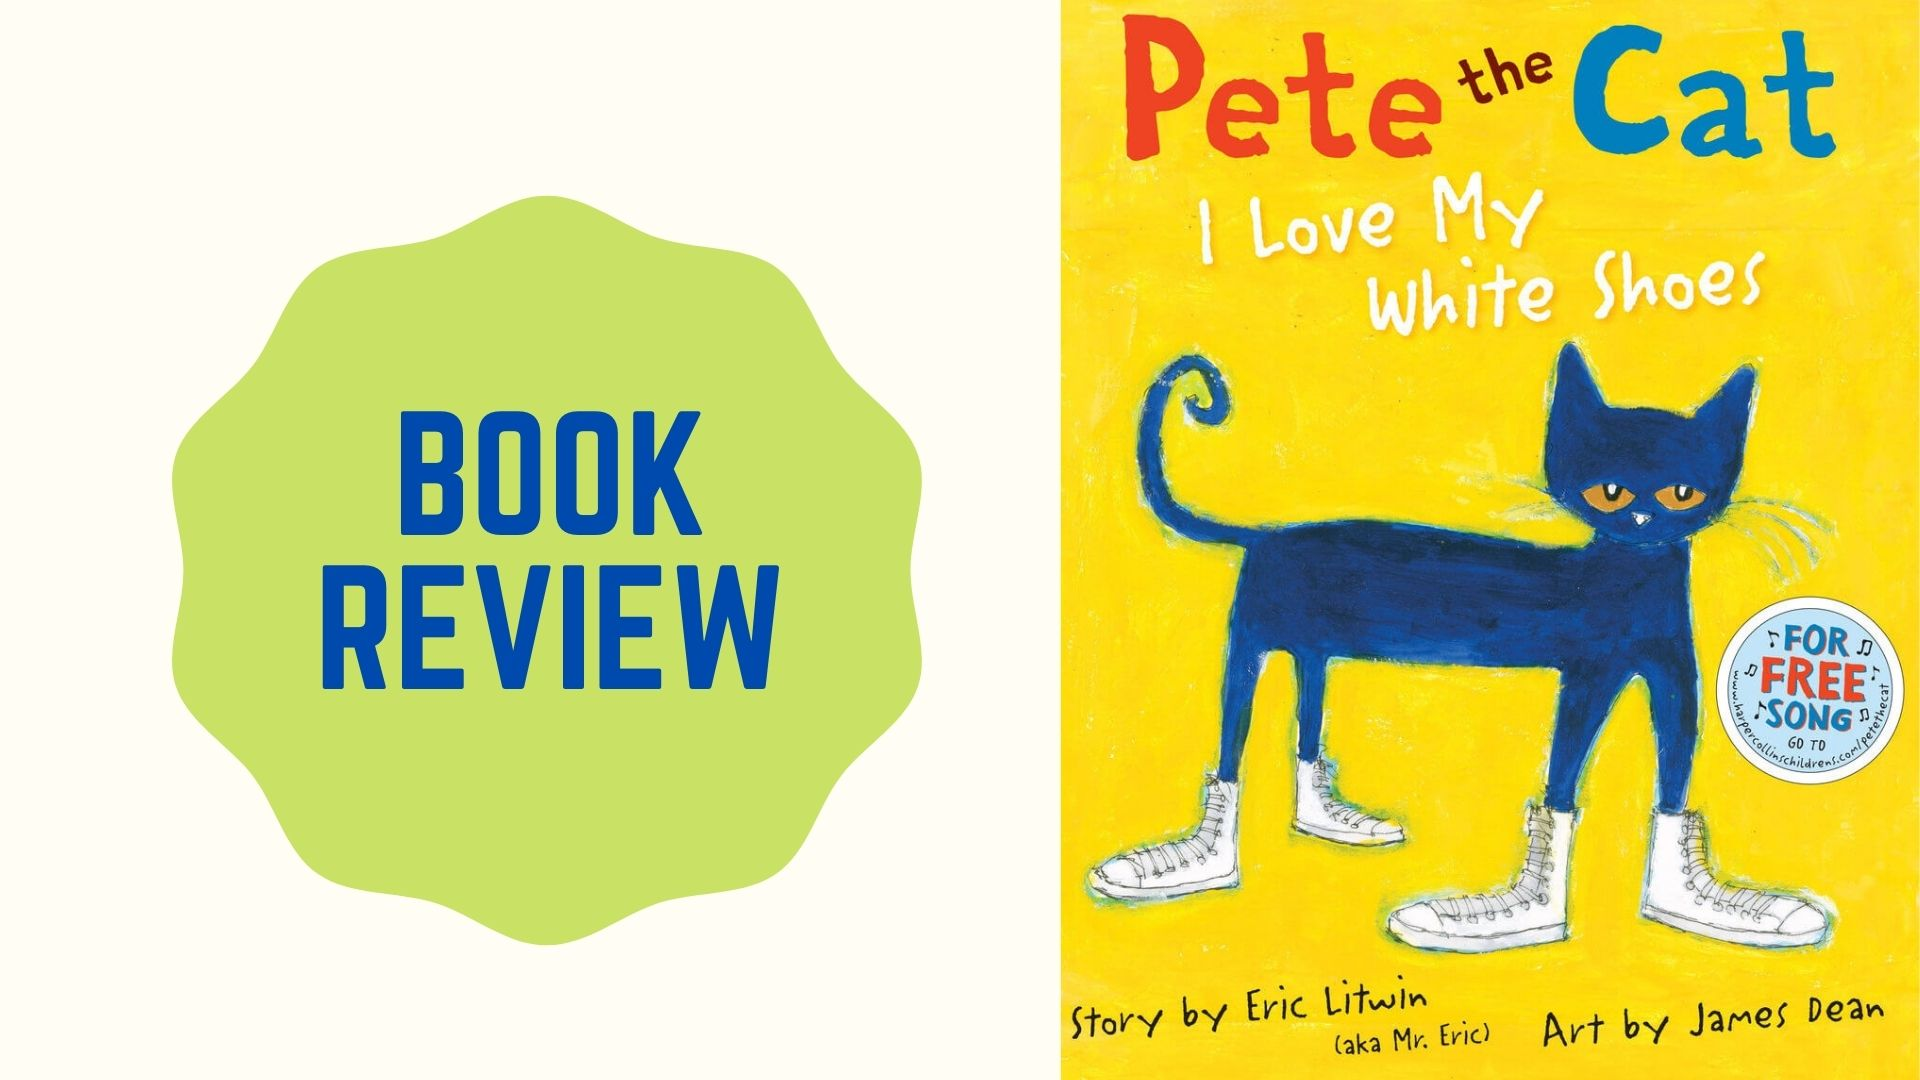 BOOK REVIEW Pete the Cat I Love My White Shoes